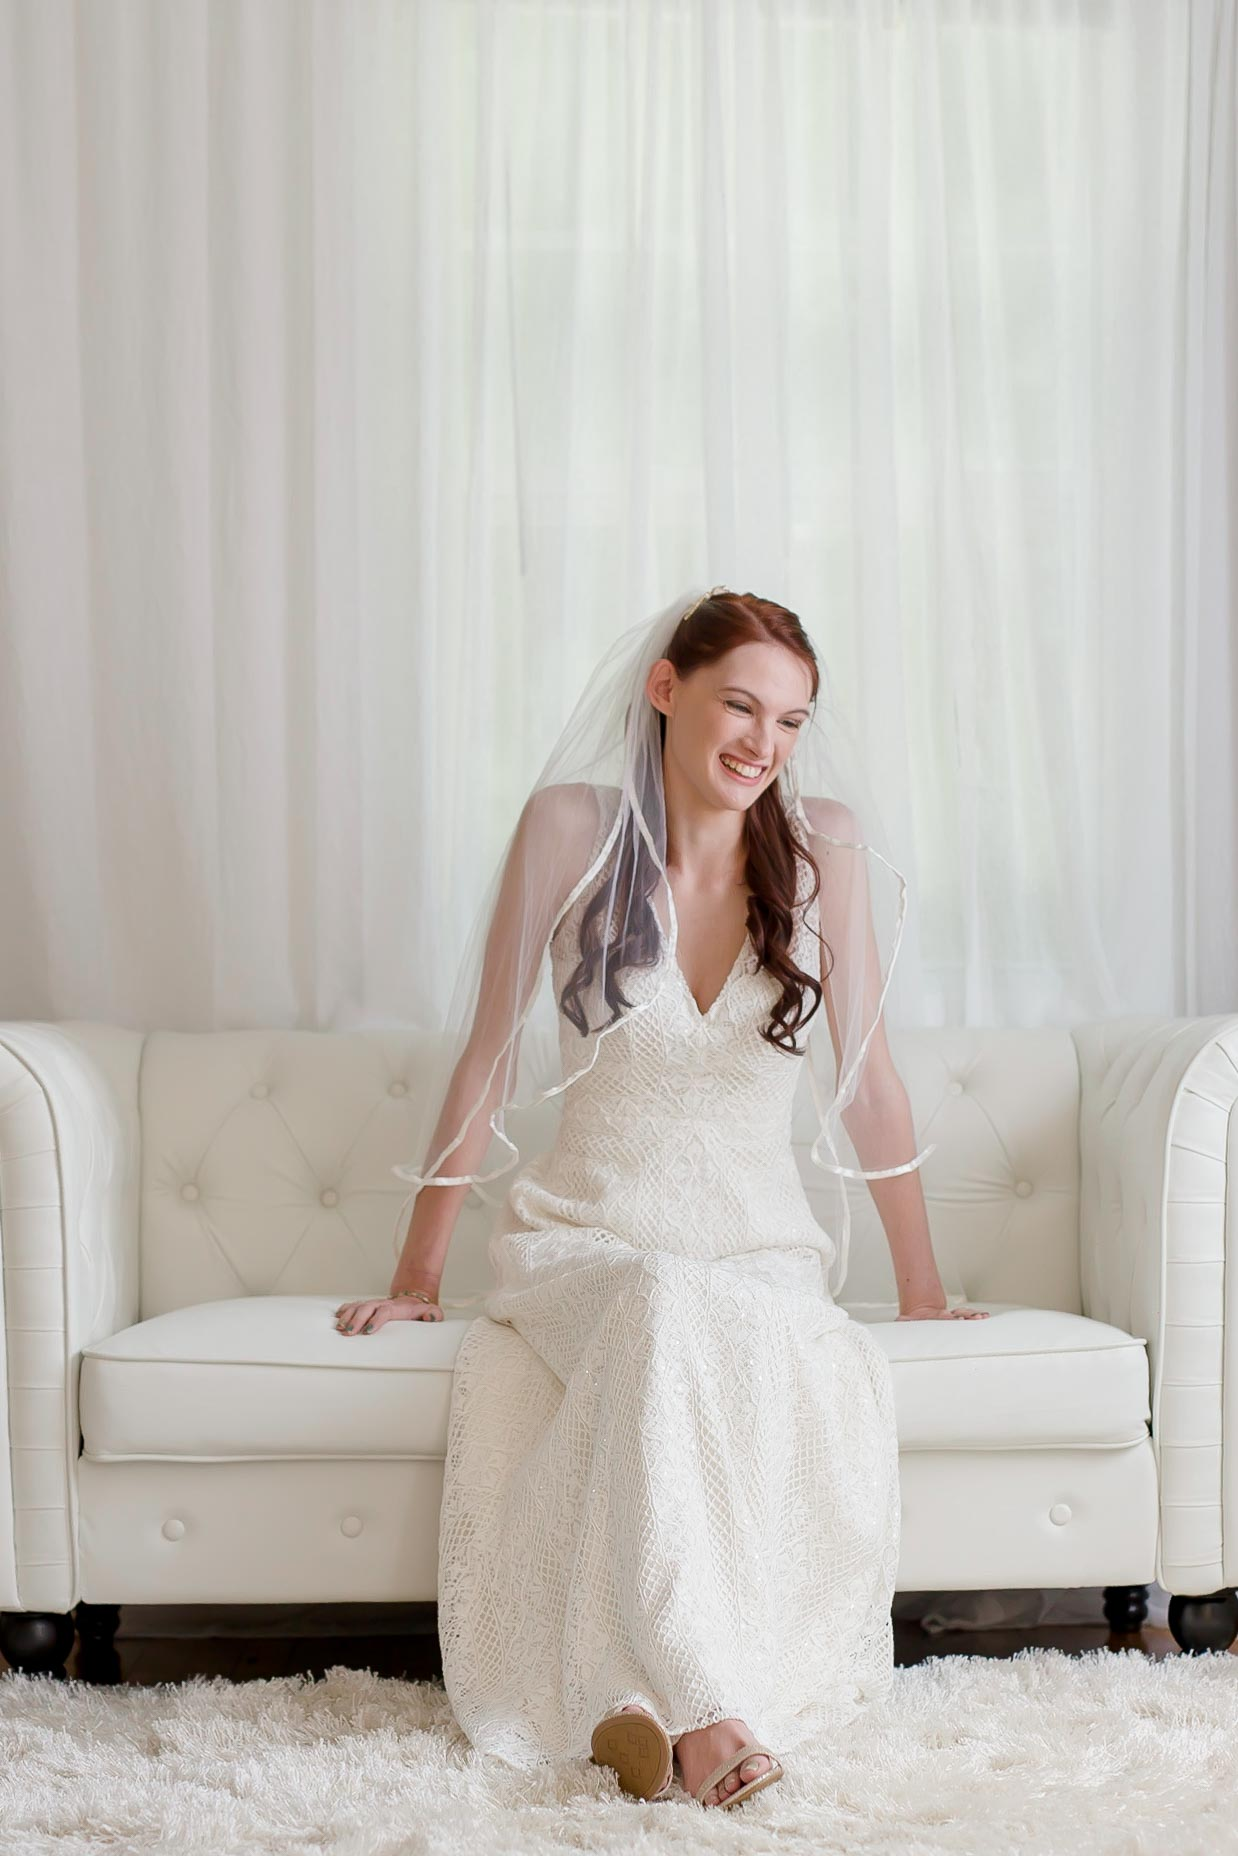 bridal session, sami roy photography, the studio hampton roads, virginia beach wedding photographer